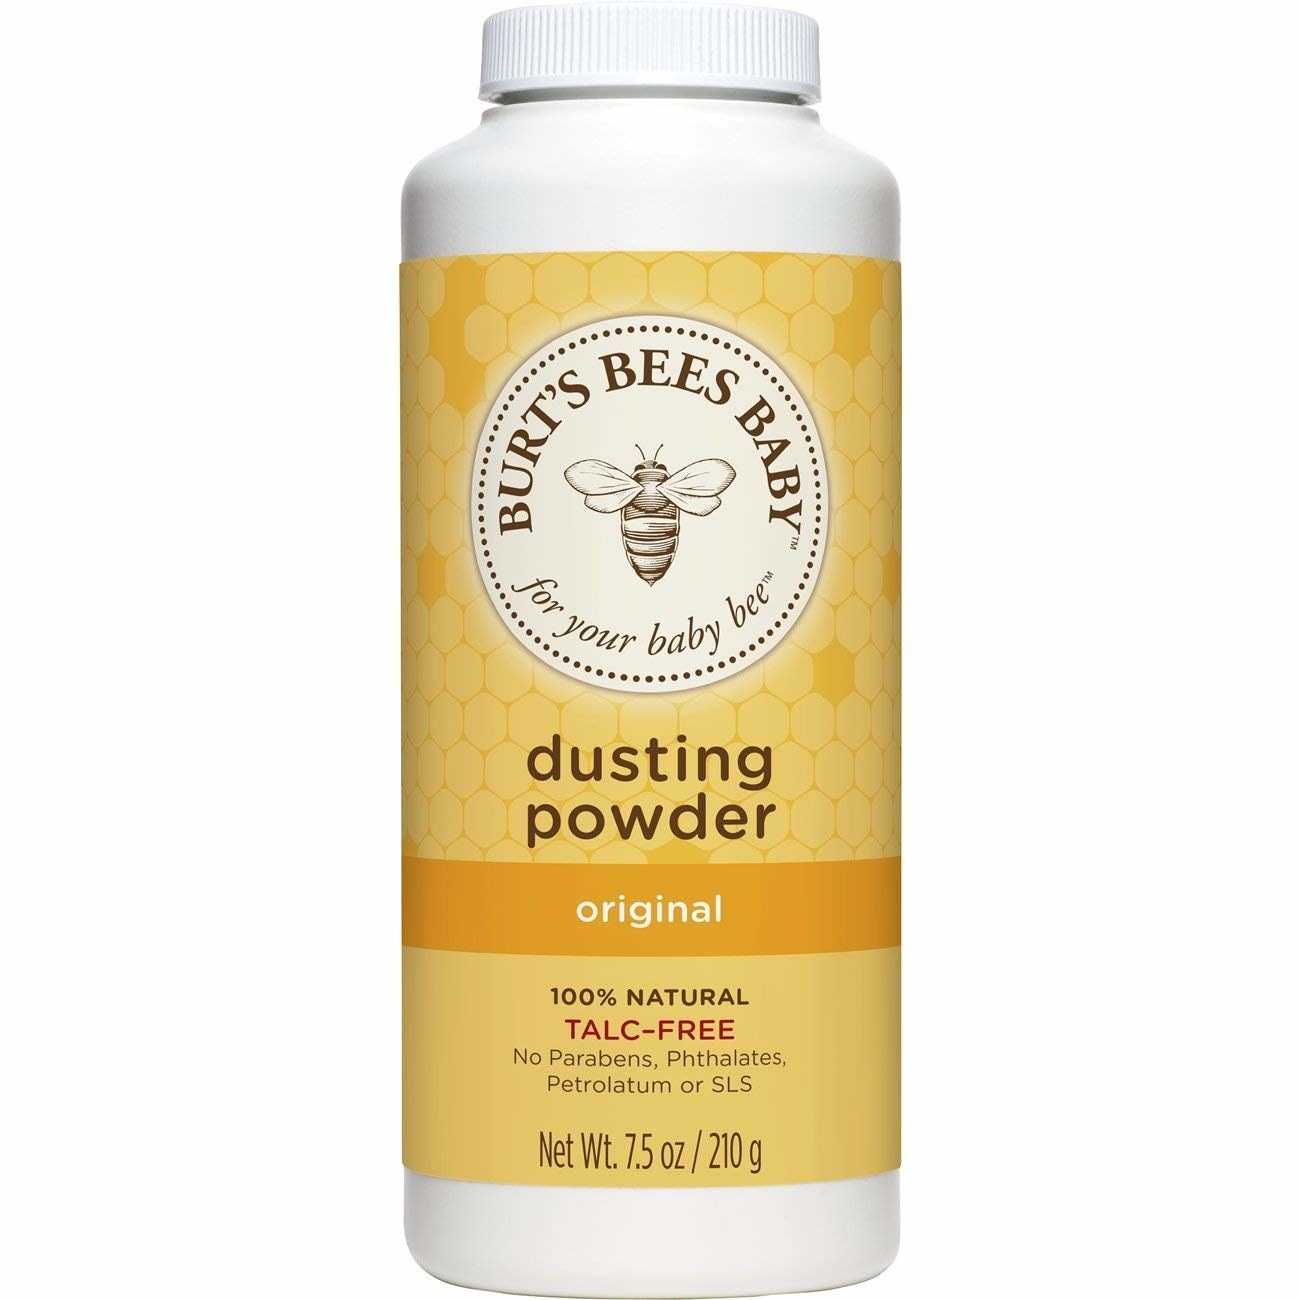 """""""Well, preparing the night before is the most important part. As for time saving products dry shampoo or just plain baby powder can be a life saver. You can apply it the night before as well and let it do it's work while you sleep."""" —a4c1ecdbc6Several Amazon reviewers use this Burt's Bees baby powder as dry shampoo because it's lightly scented, talc-free, and absorbs a great deal of oil. Get it from Amazon for $7.14."""